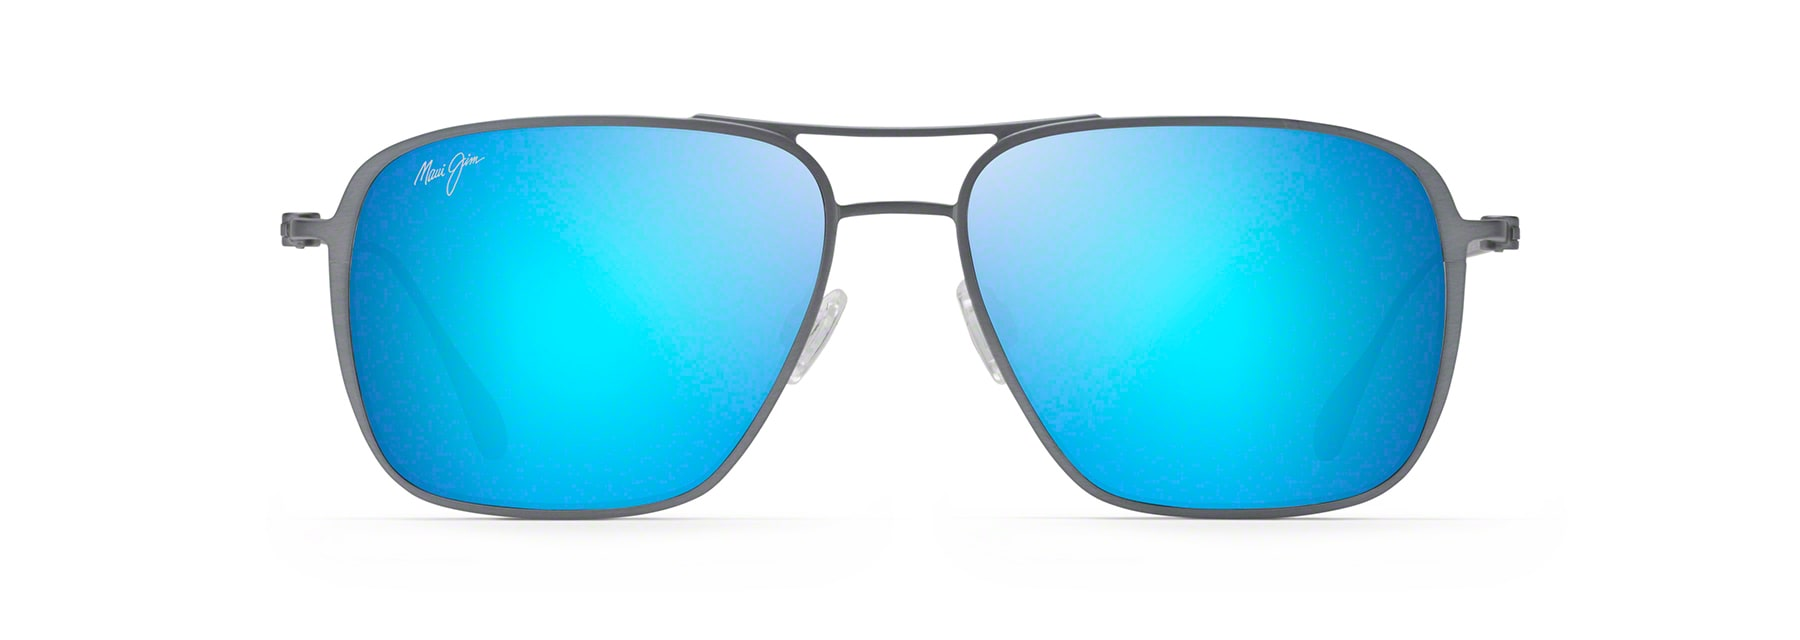 b53c964f738b Beaches Polarised Sunglasses | Maui Jim®